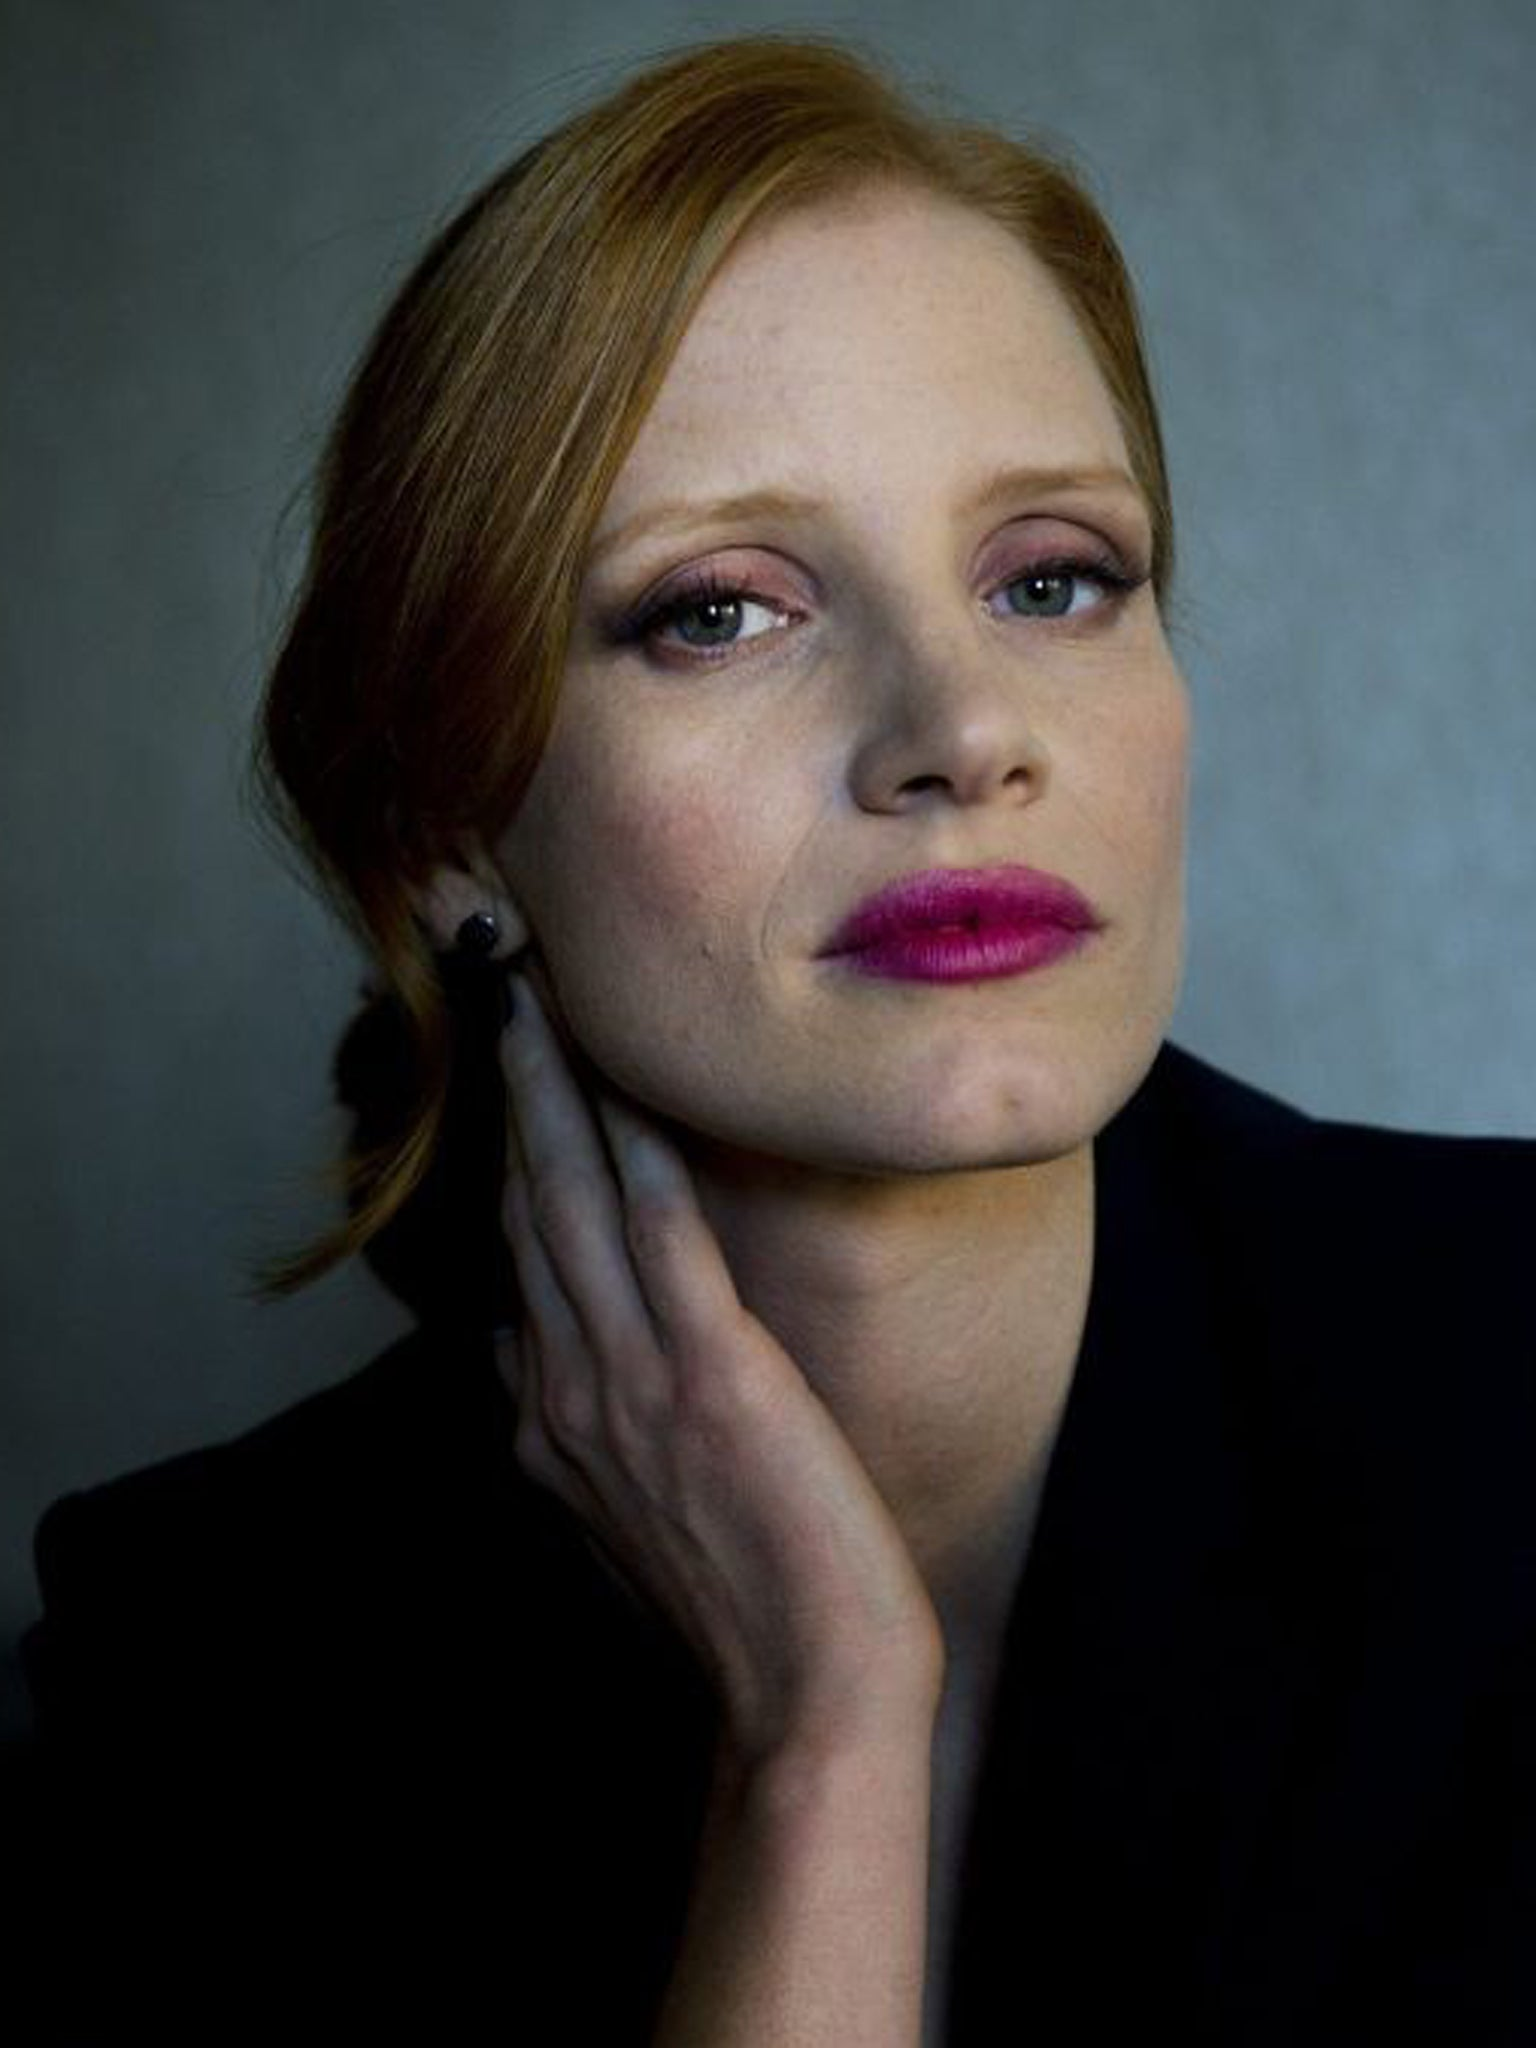 jessica chastain кинопоискjessica chastain gif, jessica chastain gif hunt, jessica chastain fan, jessica chastain mama, jessica chastain twitter, jessica chastain the help, jessica chastain miss sloane, jessica chastain films, jessica chastain site, jessica chastain movies, jessica chastain boyfriend, jessica chastain кинопоиск, jessica chastain png, jessica chastain quotes, jessica chastain listal, jessica chastain and bryce dallas howard, jessica chastain net worth, jessica chastain makeup, jessica chastain wallpapers, jessica chastain filmi